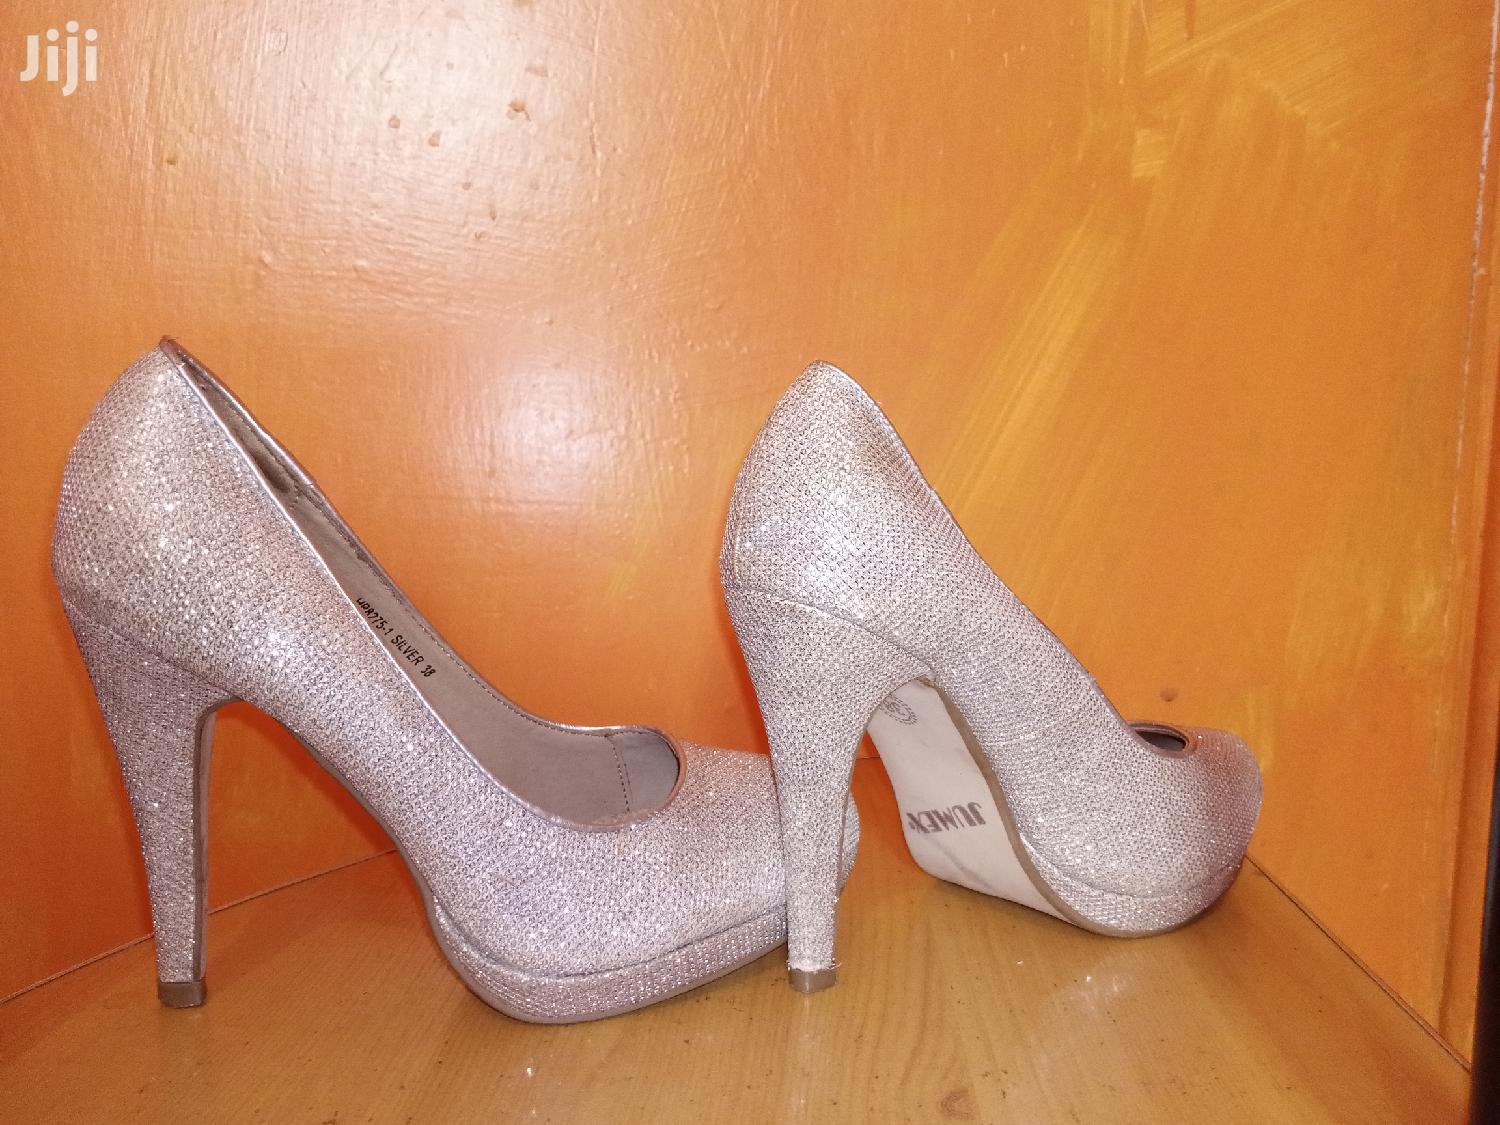 Jumex Heels | Shoes for sale in Westlands, Nairobi, Kenya